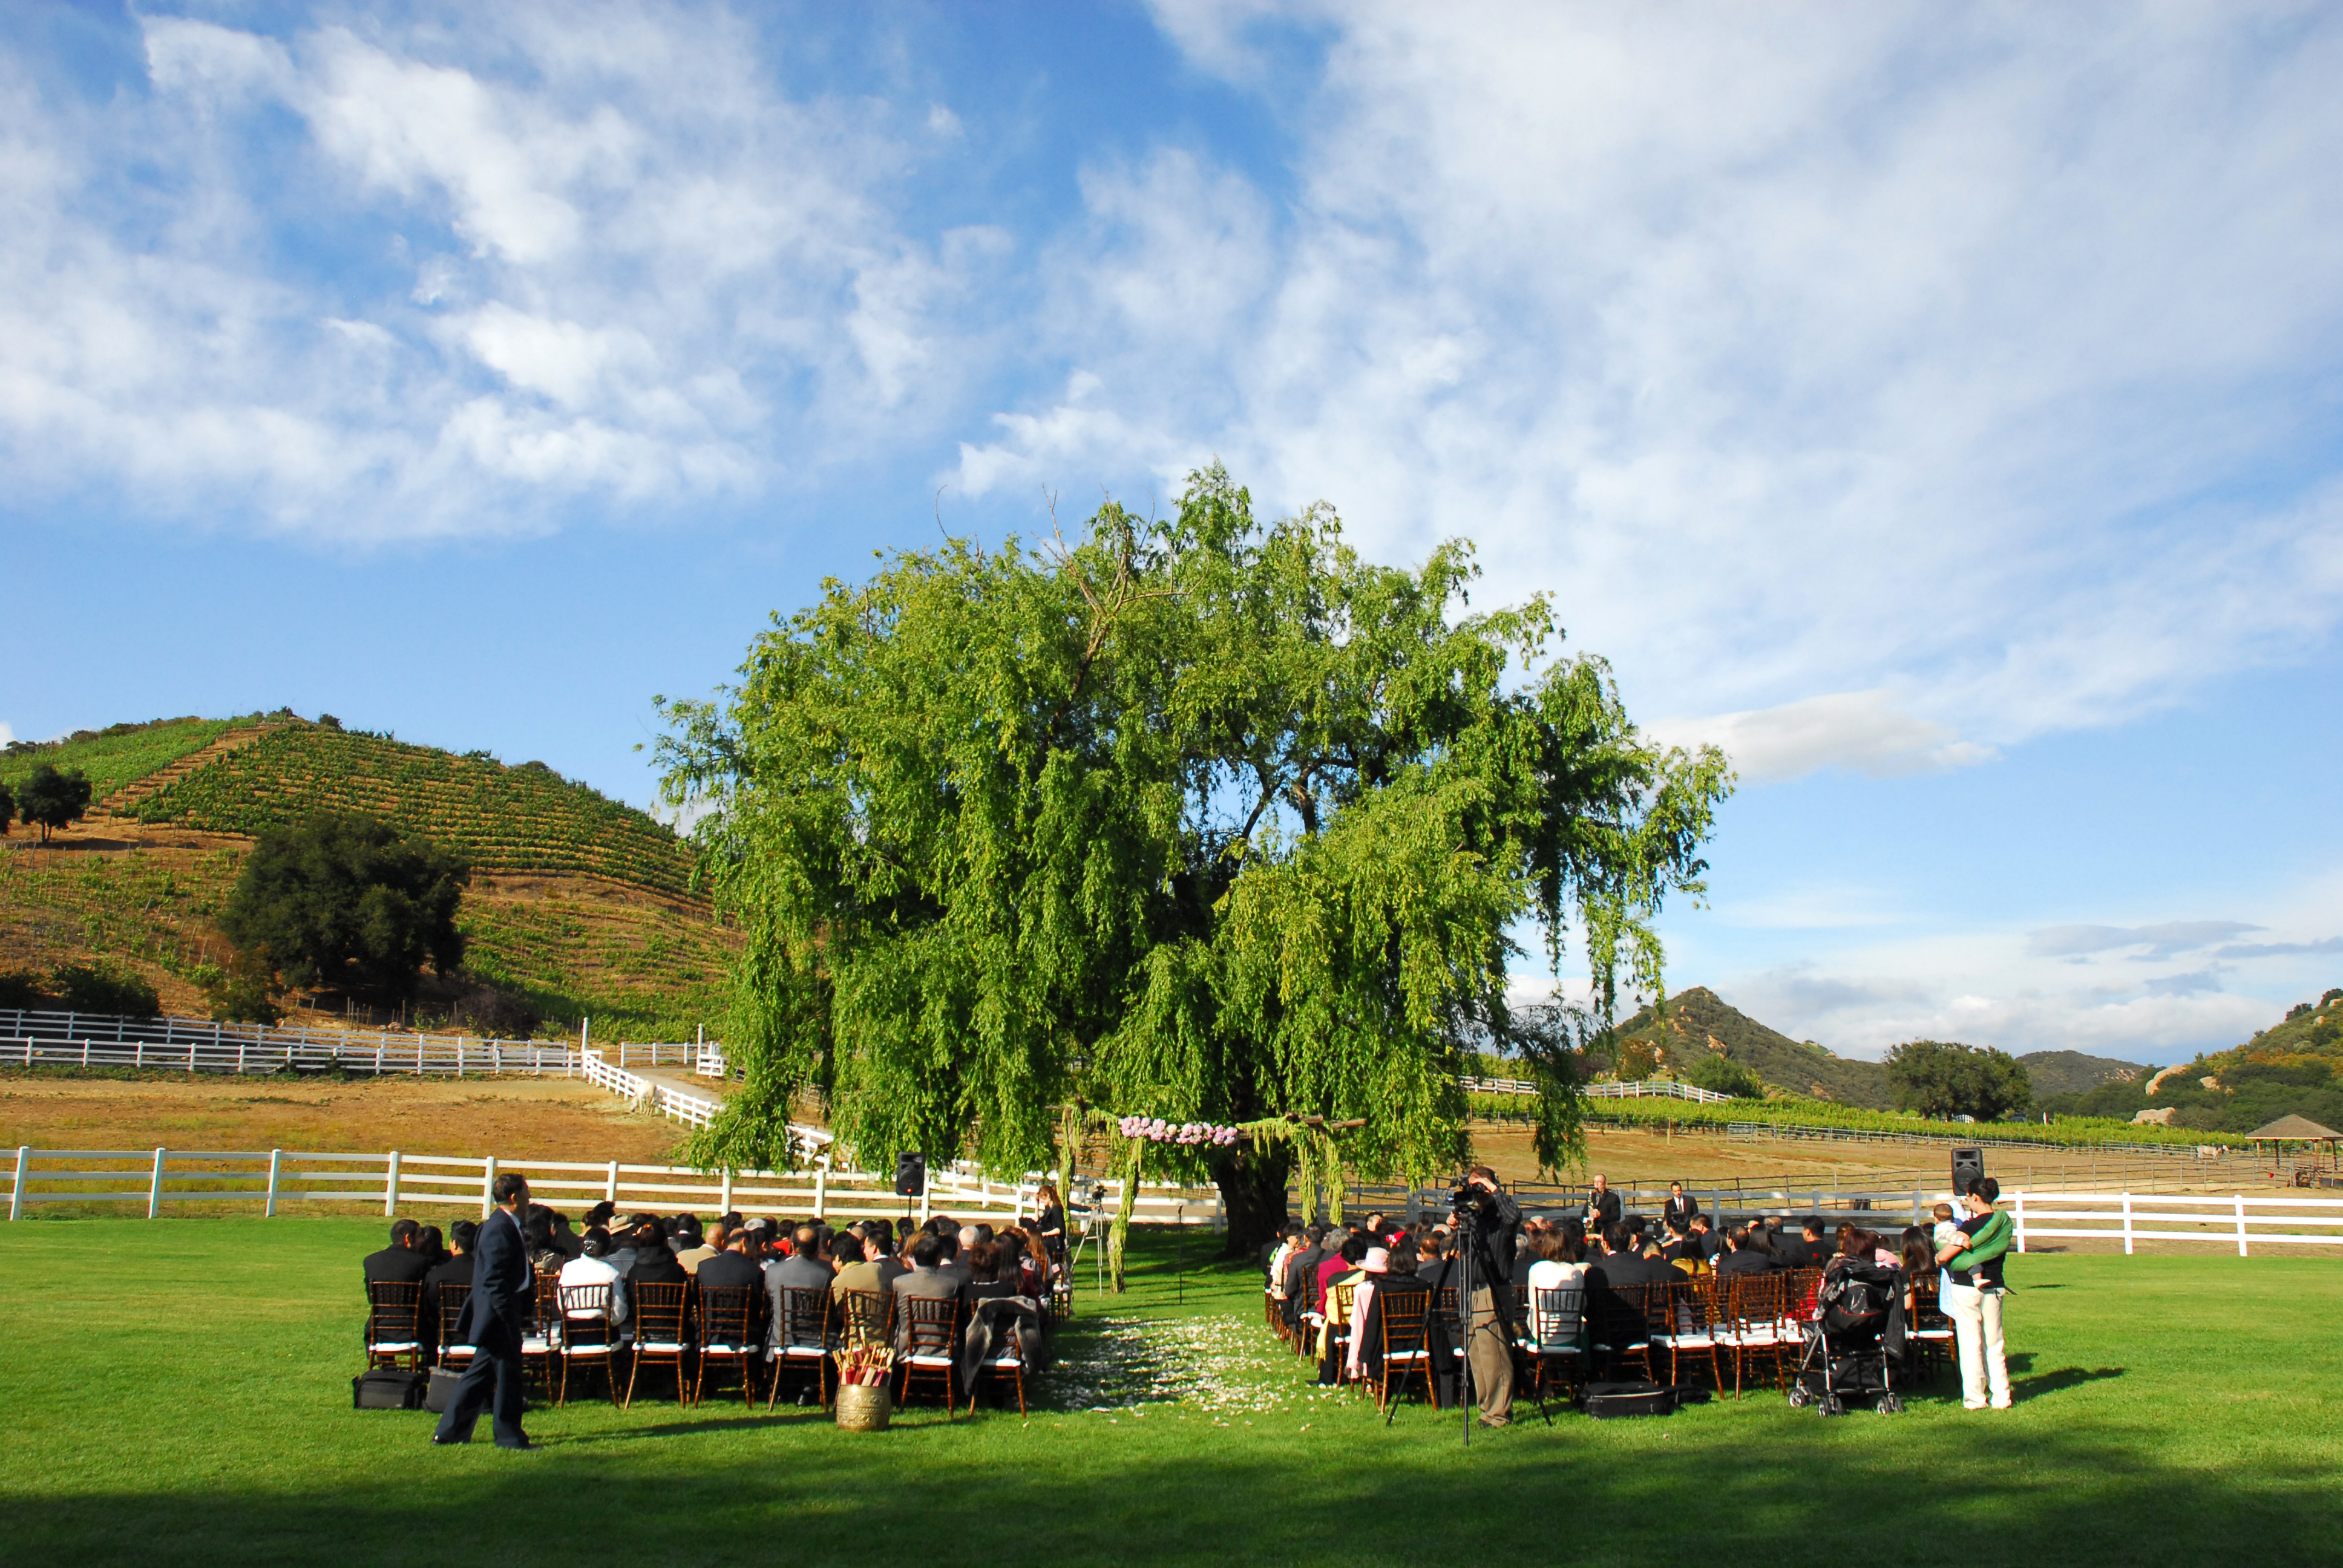 Ceremony, Flowers & Decor, pink, blue, green, brown, Guests, Scenery